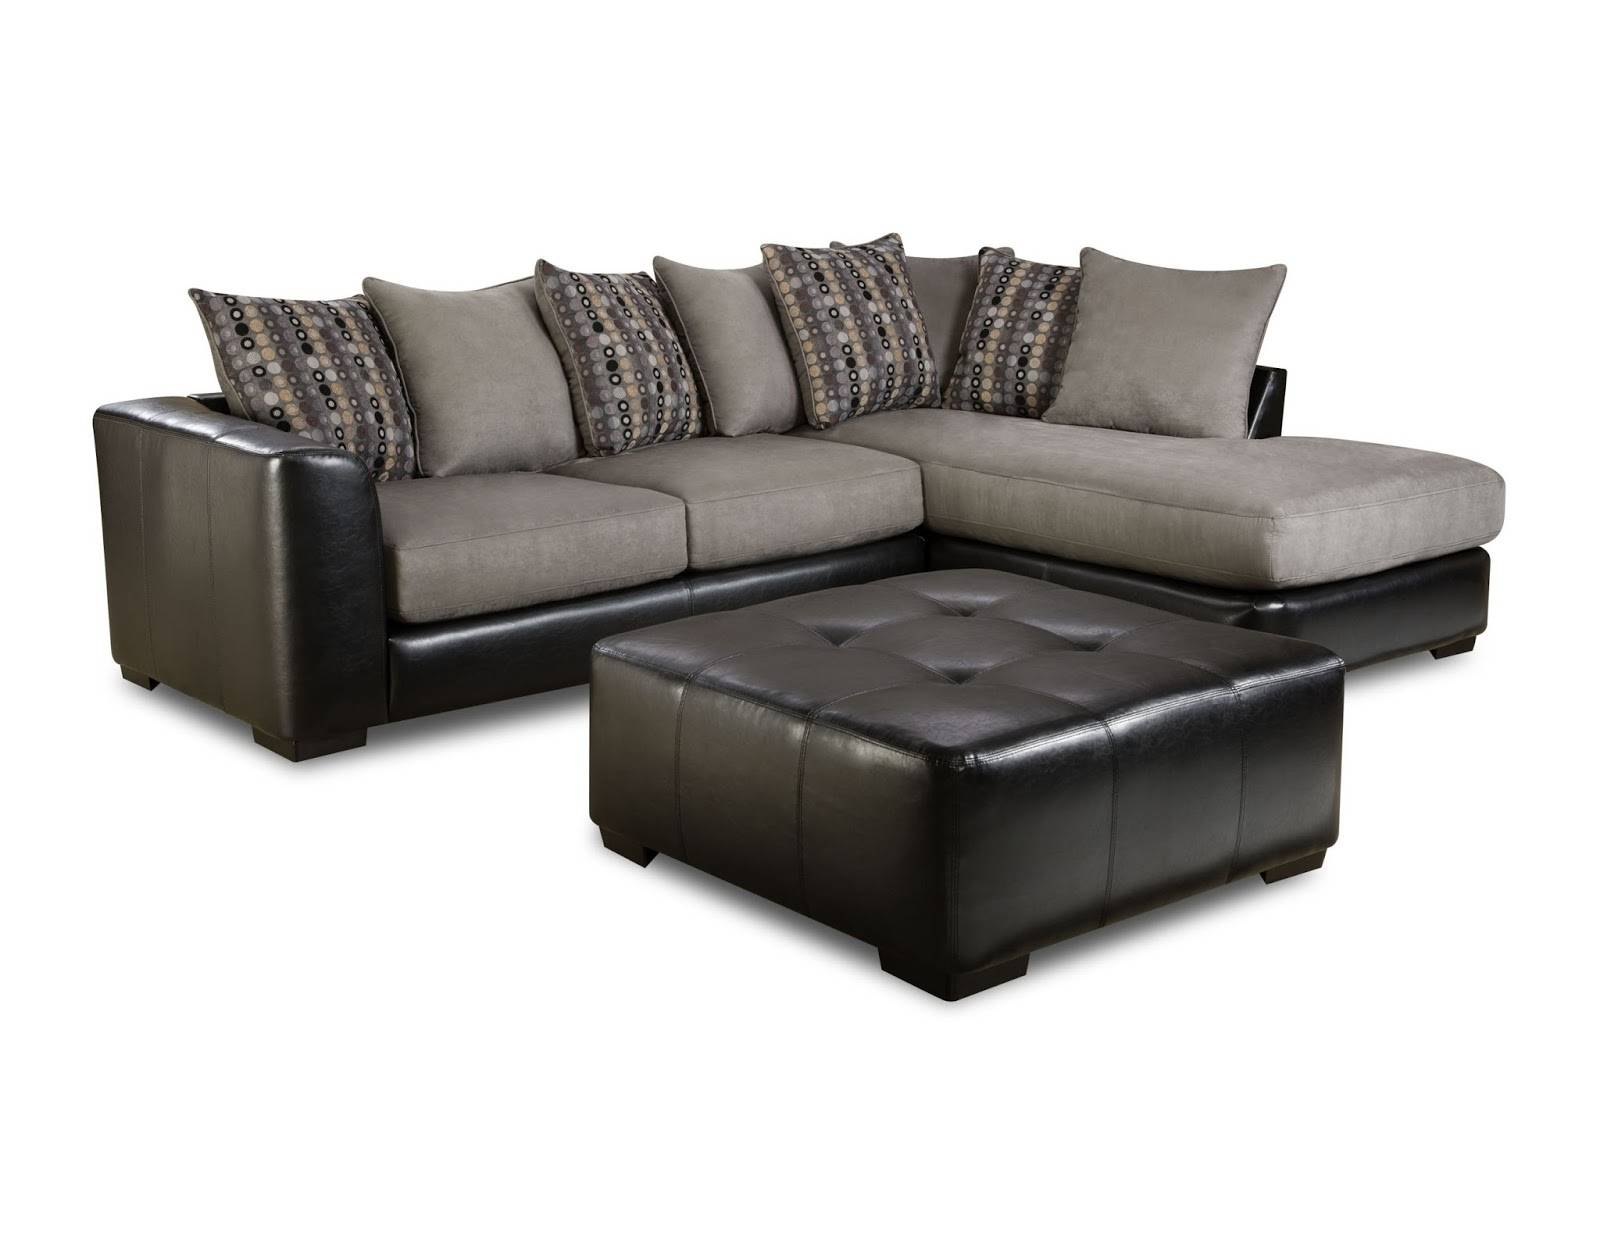 Albany Industries Sectional Sofa | Interior Design pertaining to Albany Industries Sectional Sofa (Image 3 of 30)